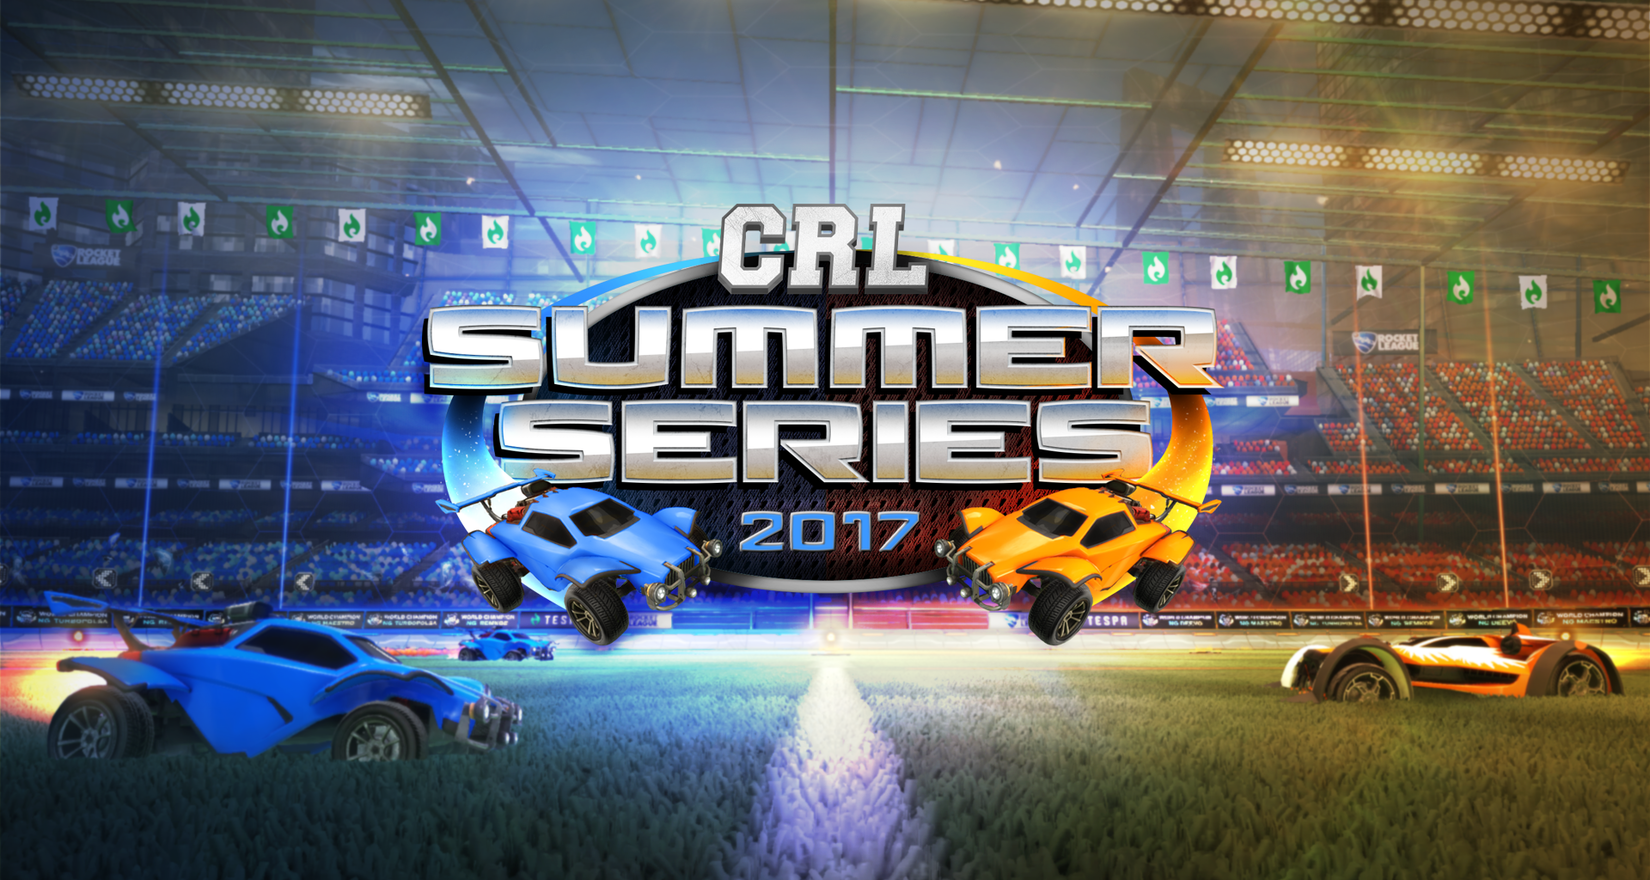 Introducing The Collegiate Rocket League - Summer Series Image